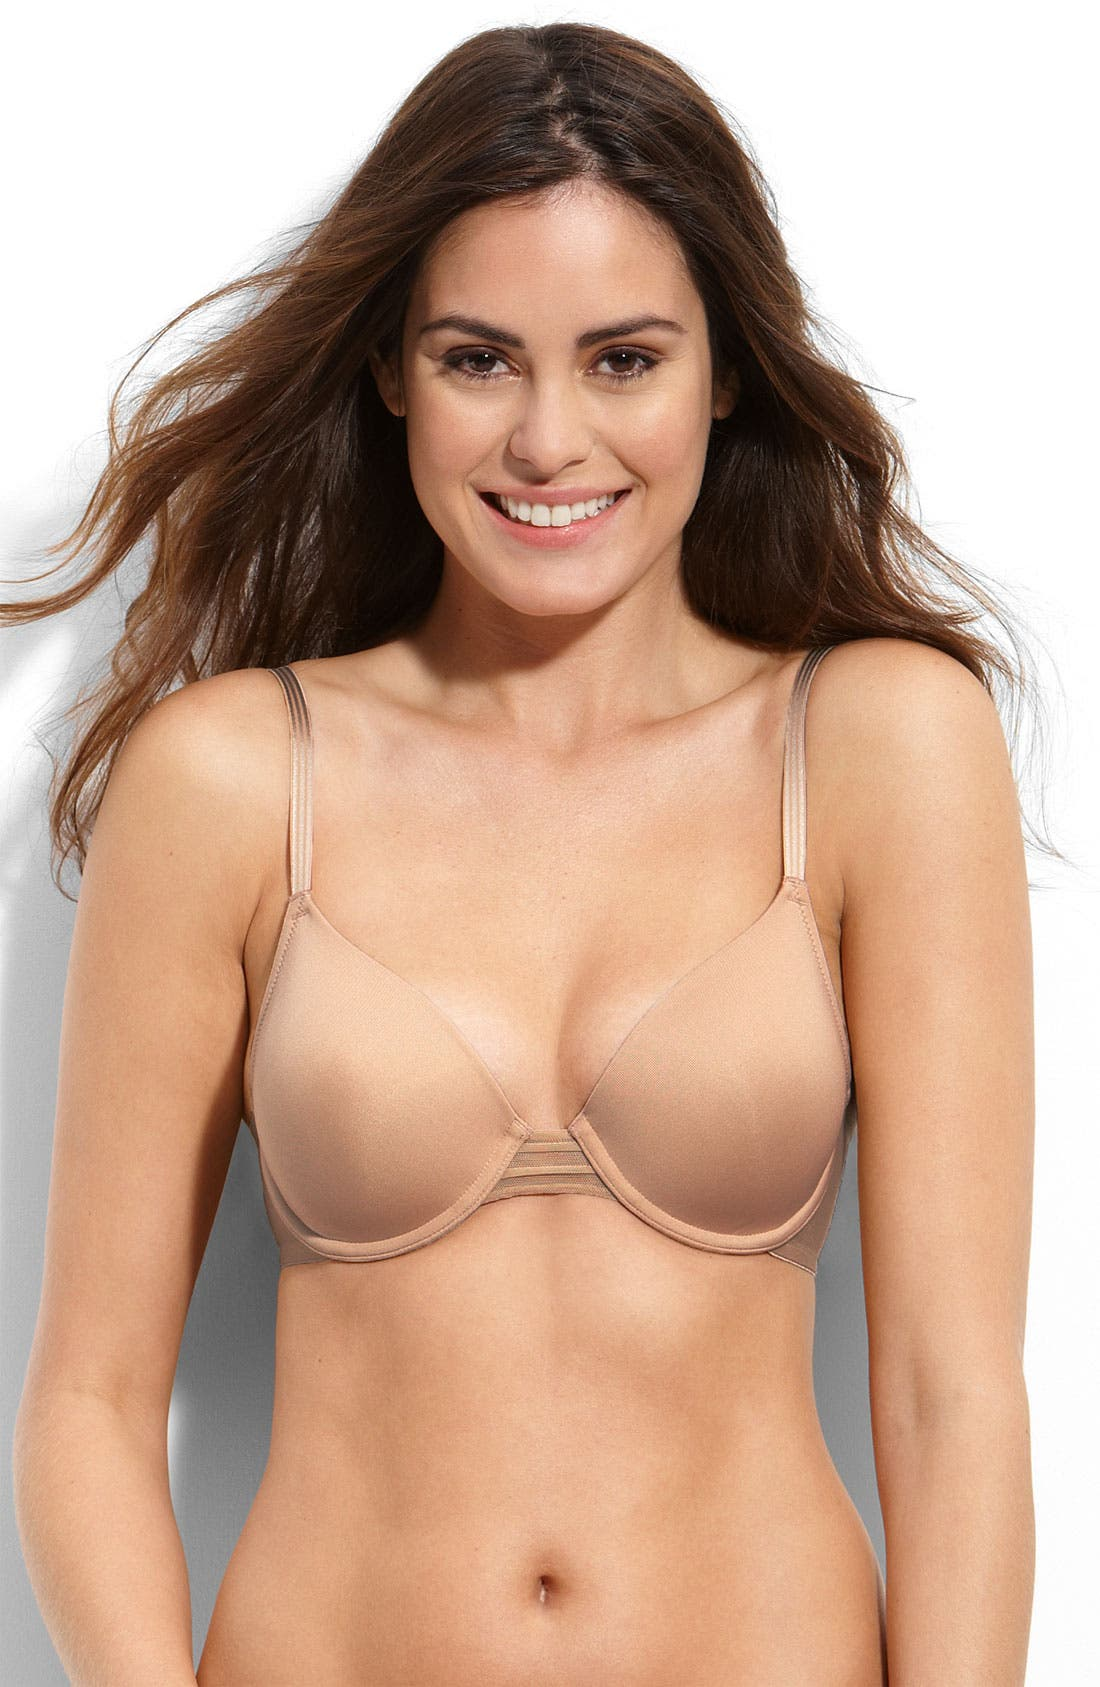 Alternate Image 1 Selected - Natori 'Cool Contour' Underwire Bra